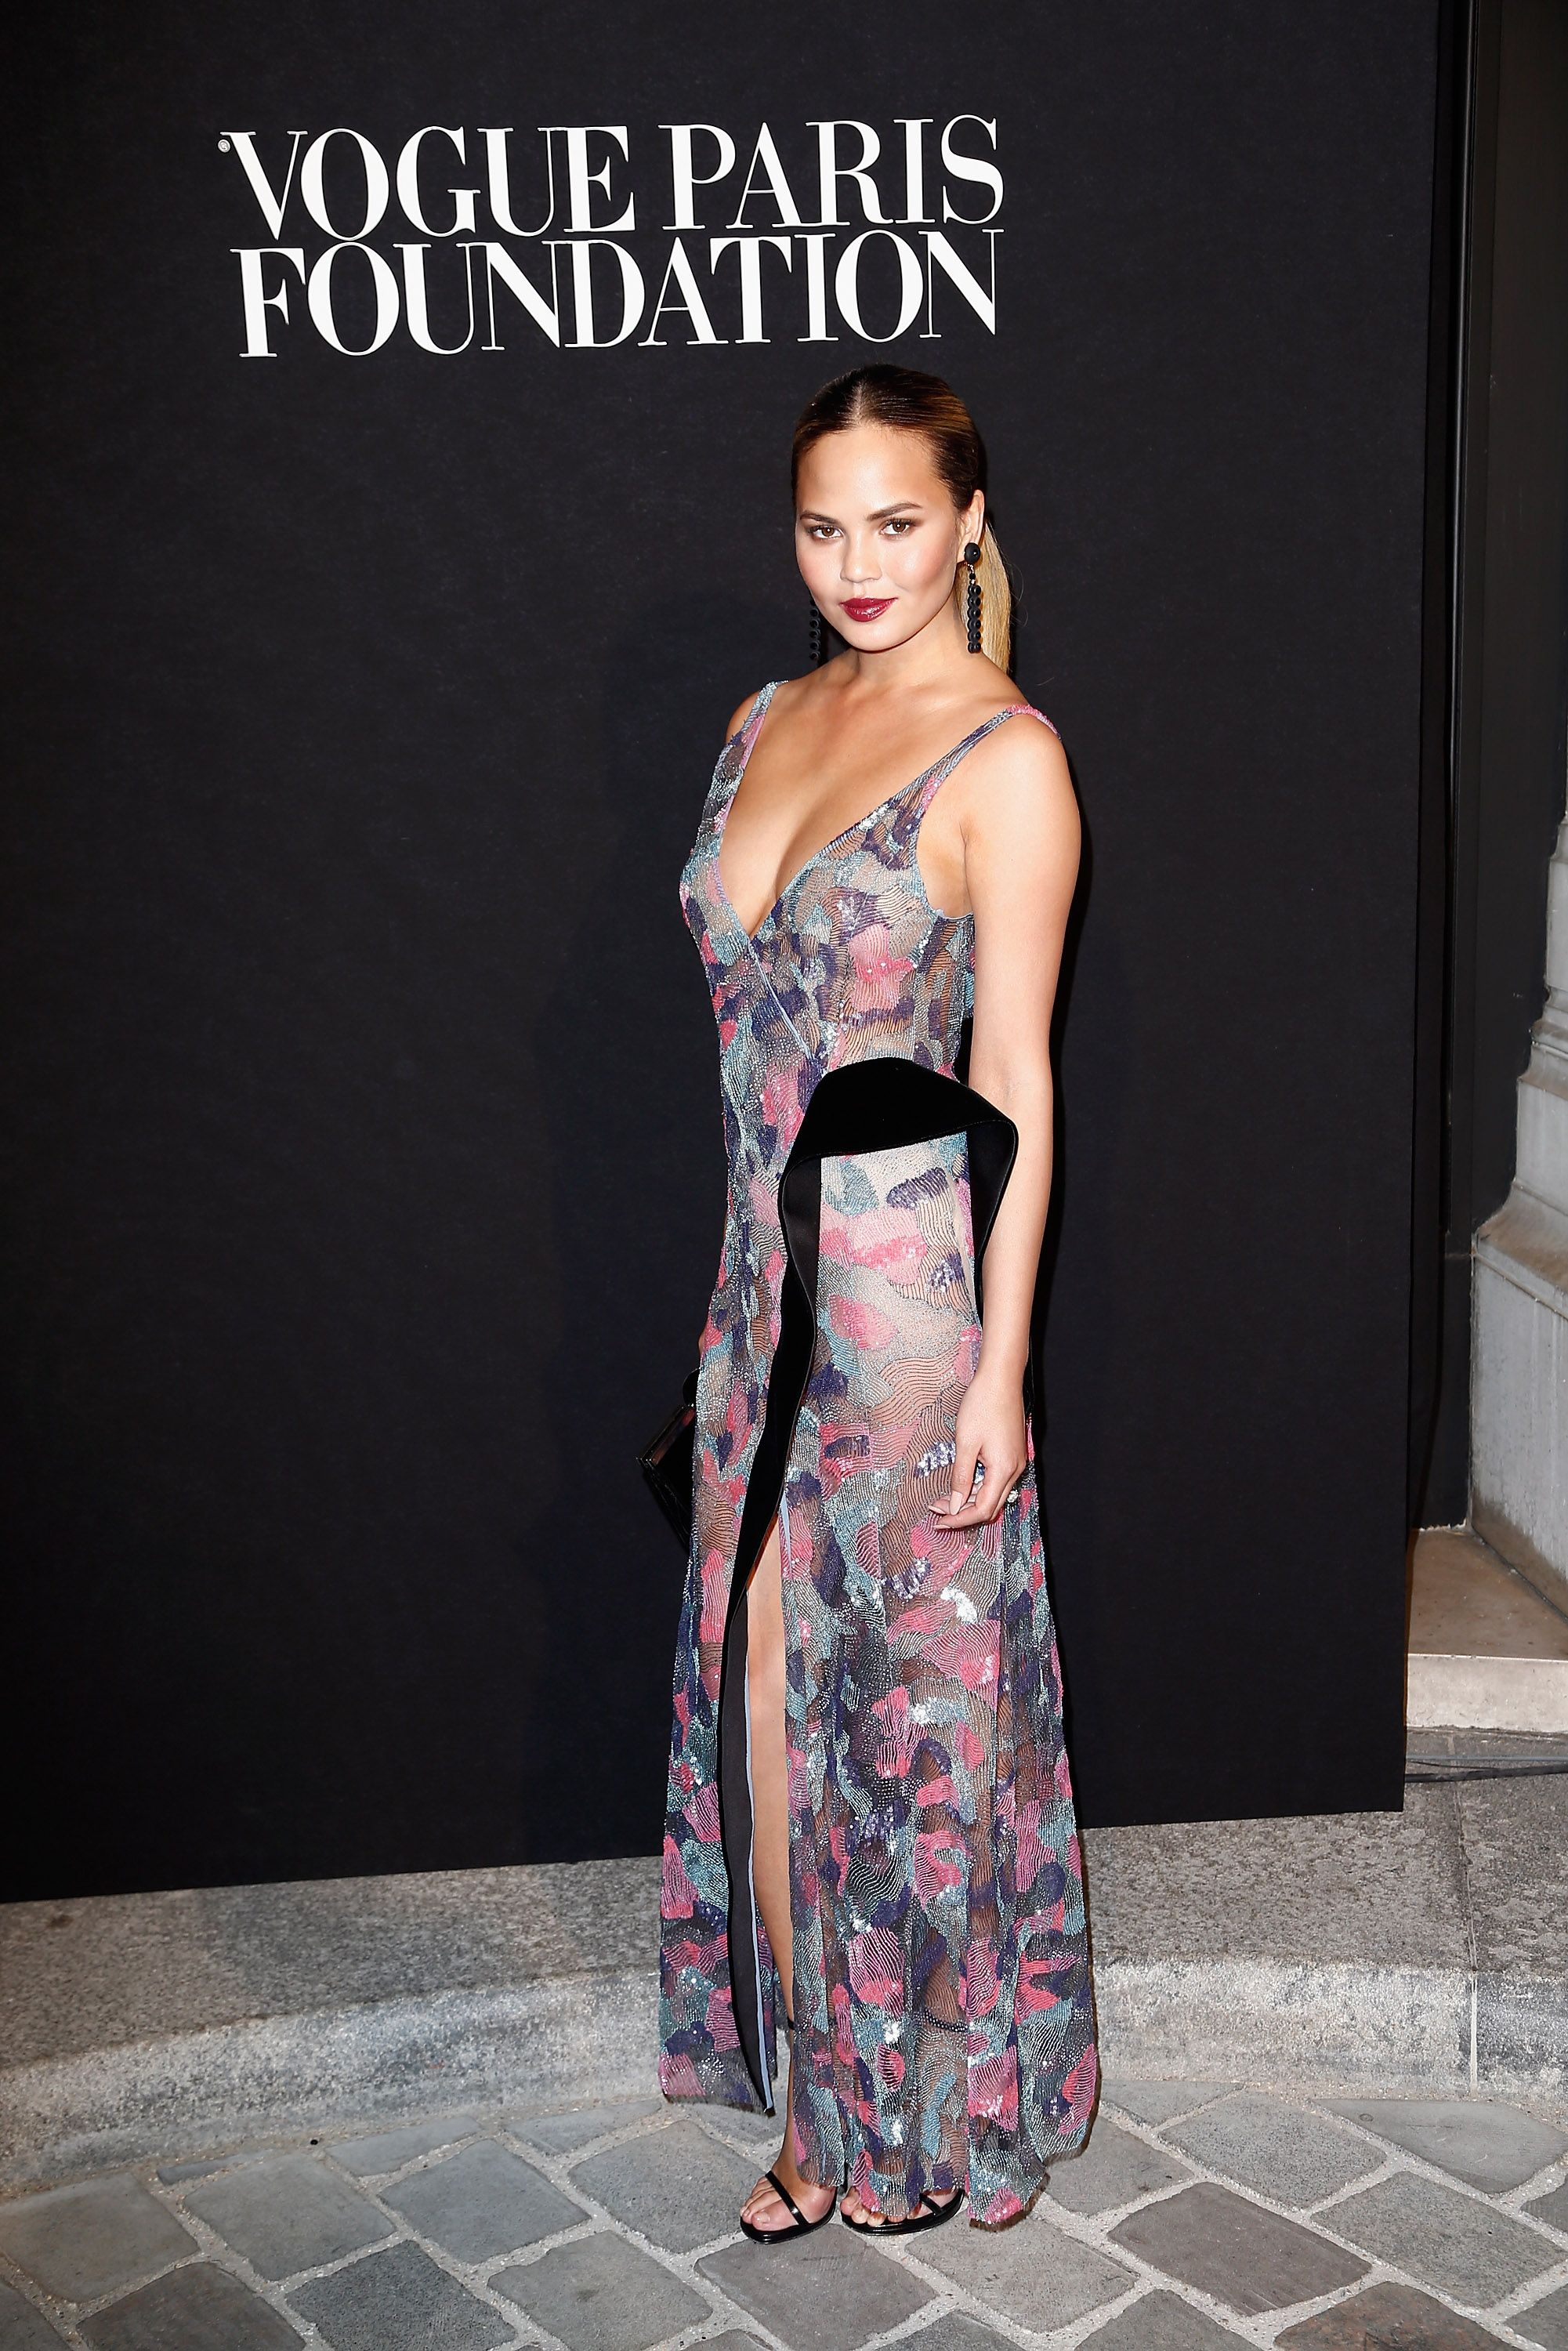 Best Looks: Chrissy Teigen | Christine Teigen | Pinterest | Vogue ...